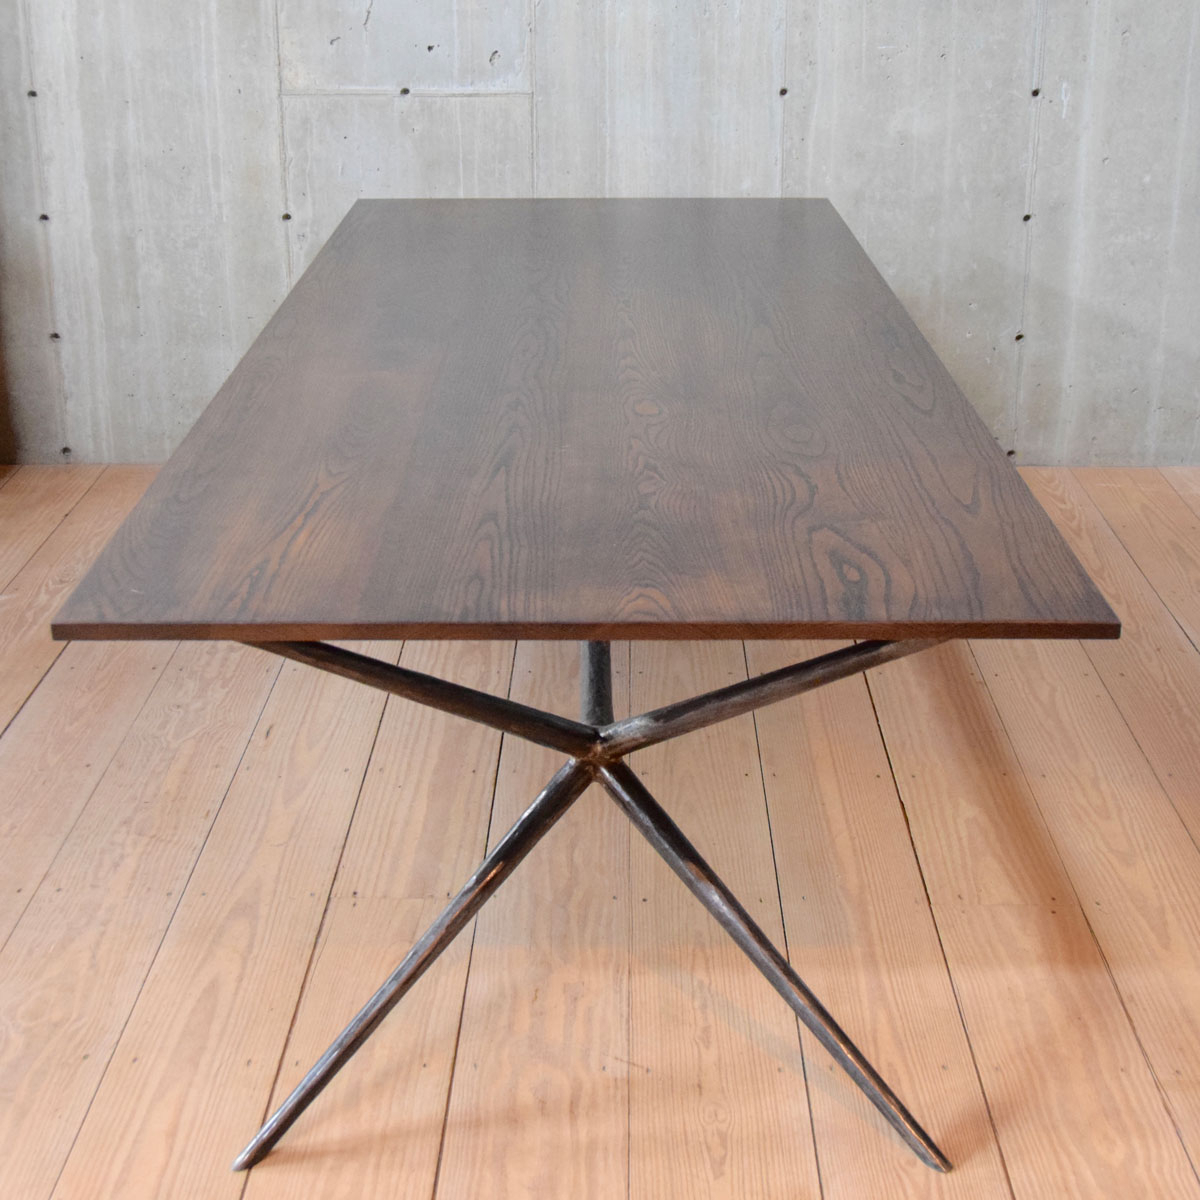 "Italian Job 96"" Dining Table, Blackened Steel, Walnut Stained Ash Top,  Chamfered Edge Regarding Most Current Dining Tables With Stained Ash Walnut (View 20 of 30)"